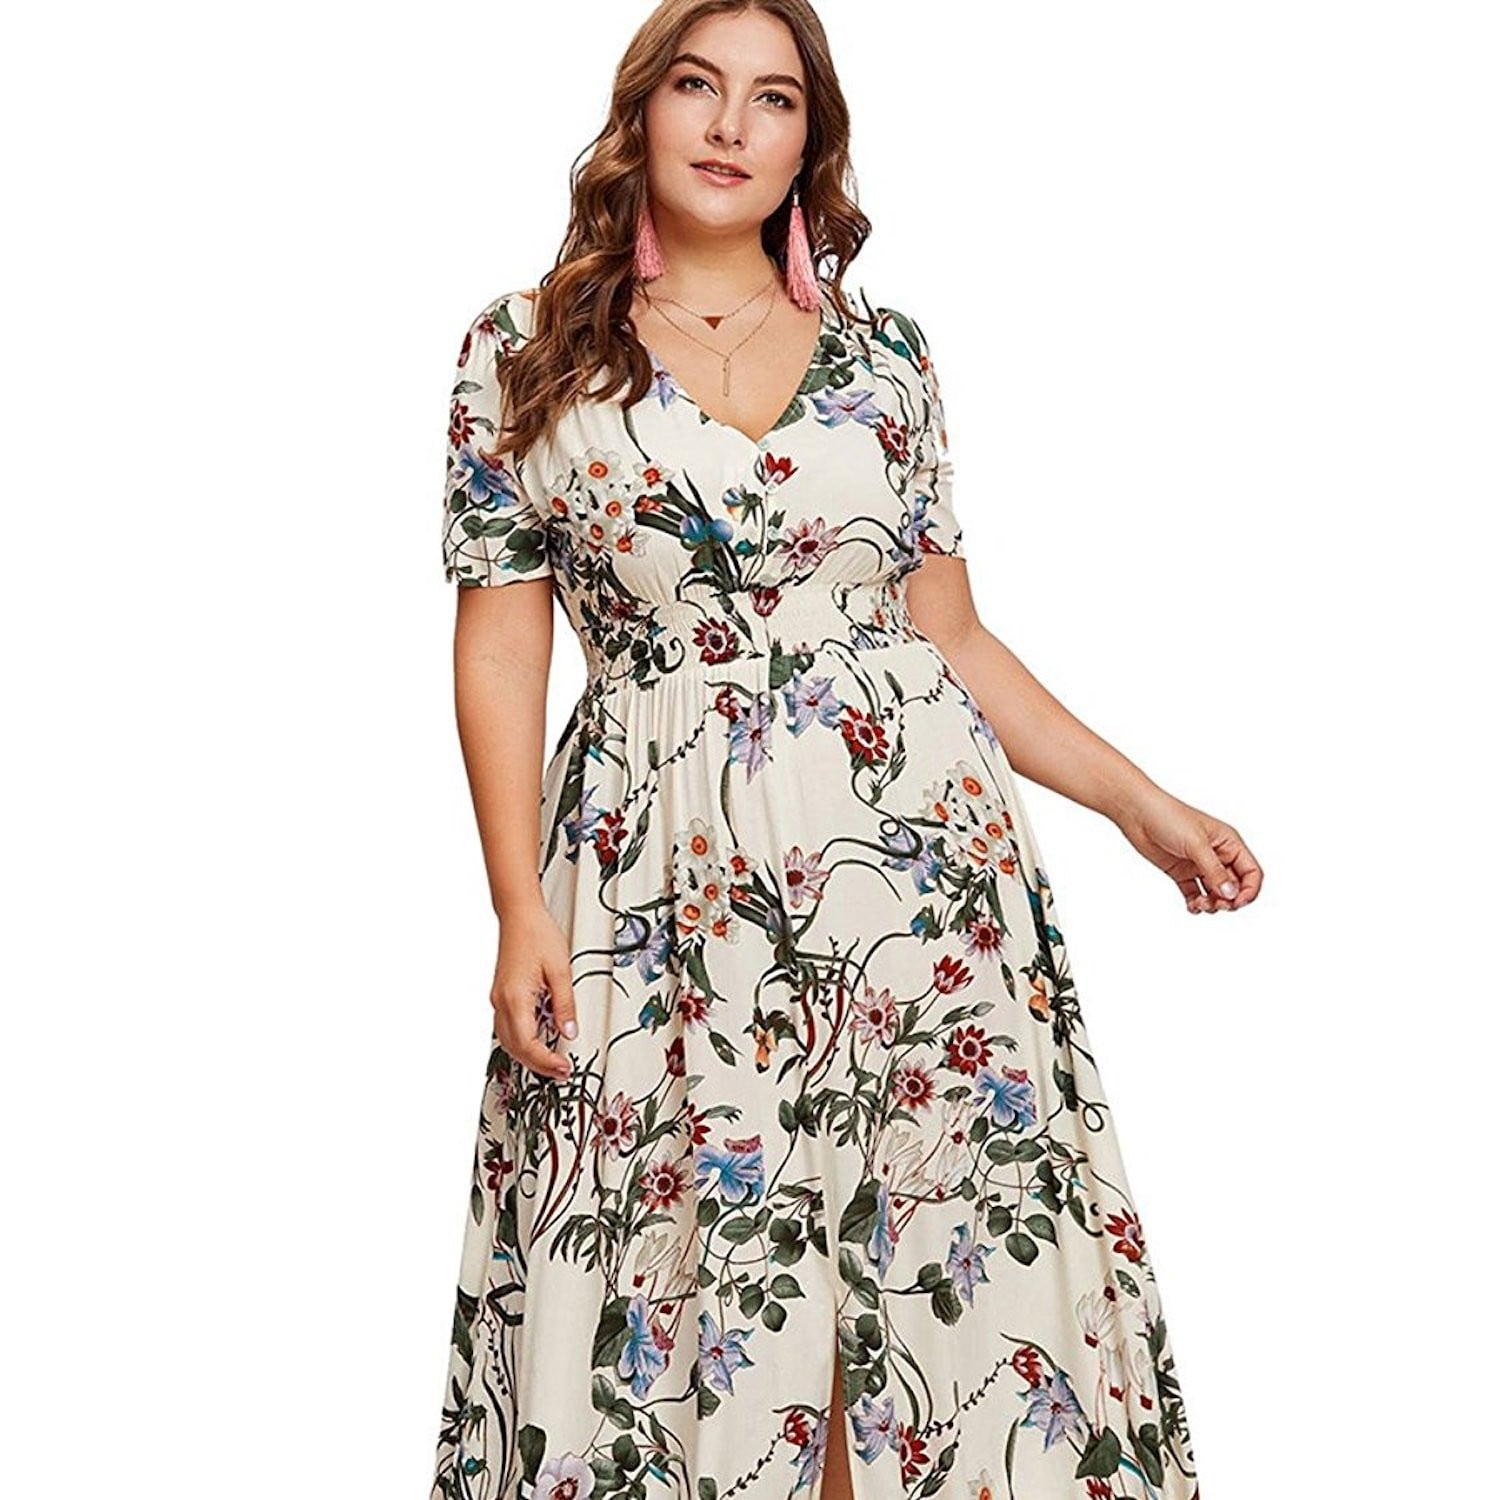 Plus-Size Dresses on Amazon 2018 | POPSUGAR Fashion